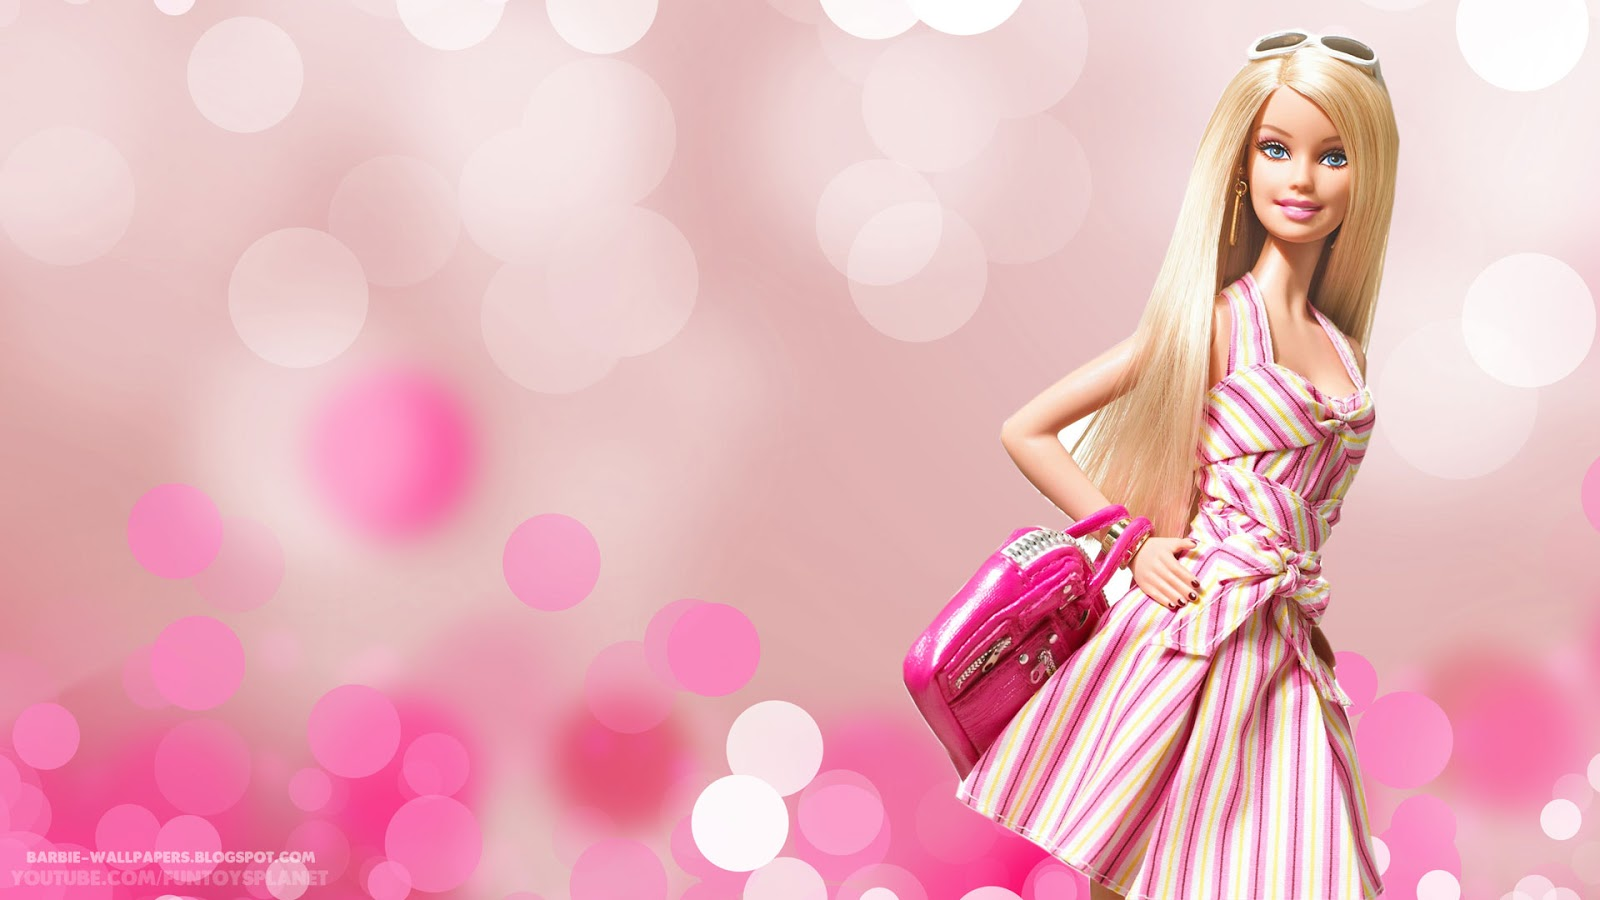 New Simple Girl Wallpaper Barbie Wallpapers Barbie Wallpapers For Girls